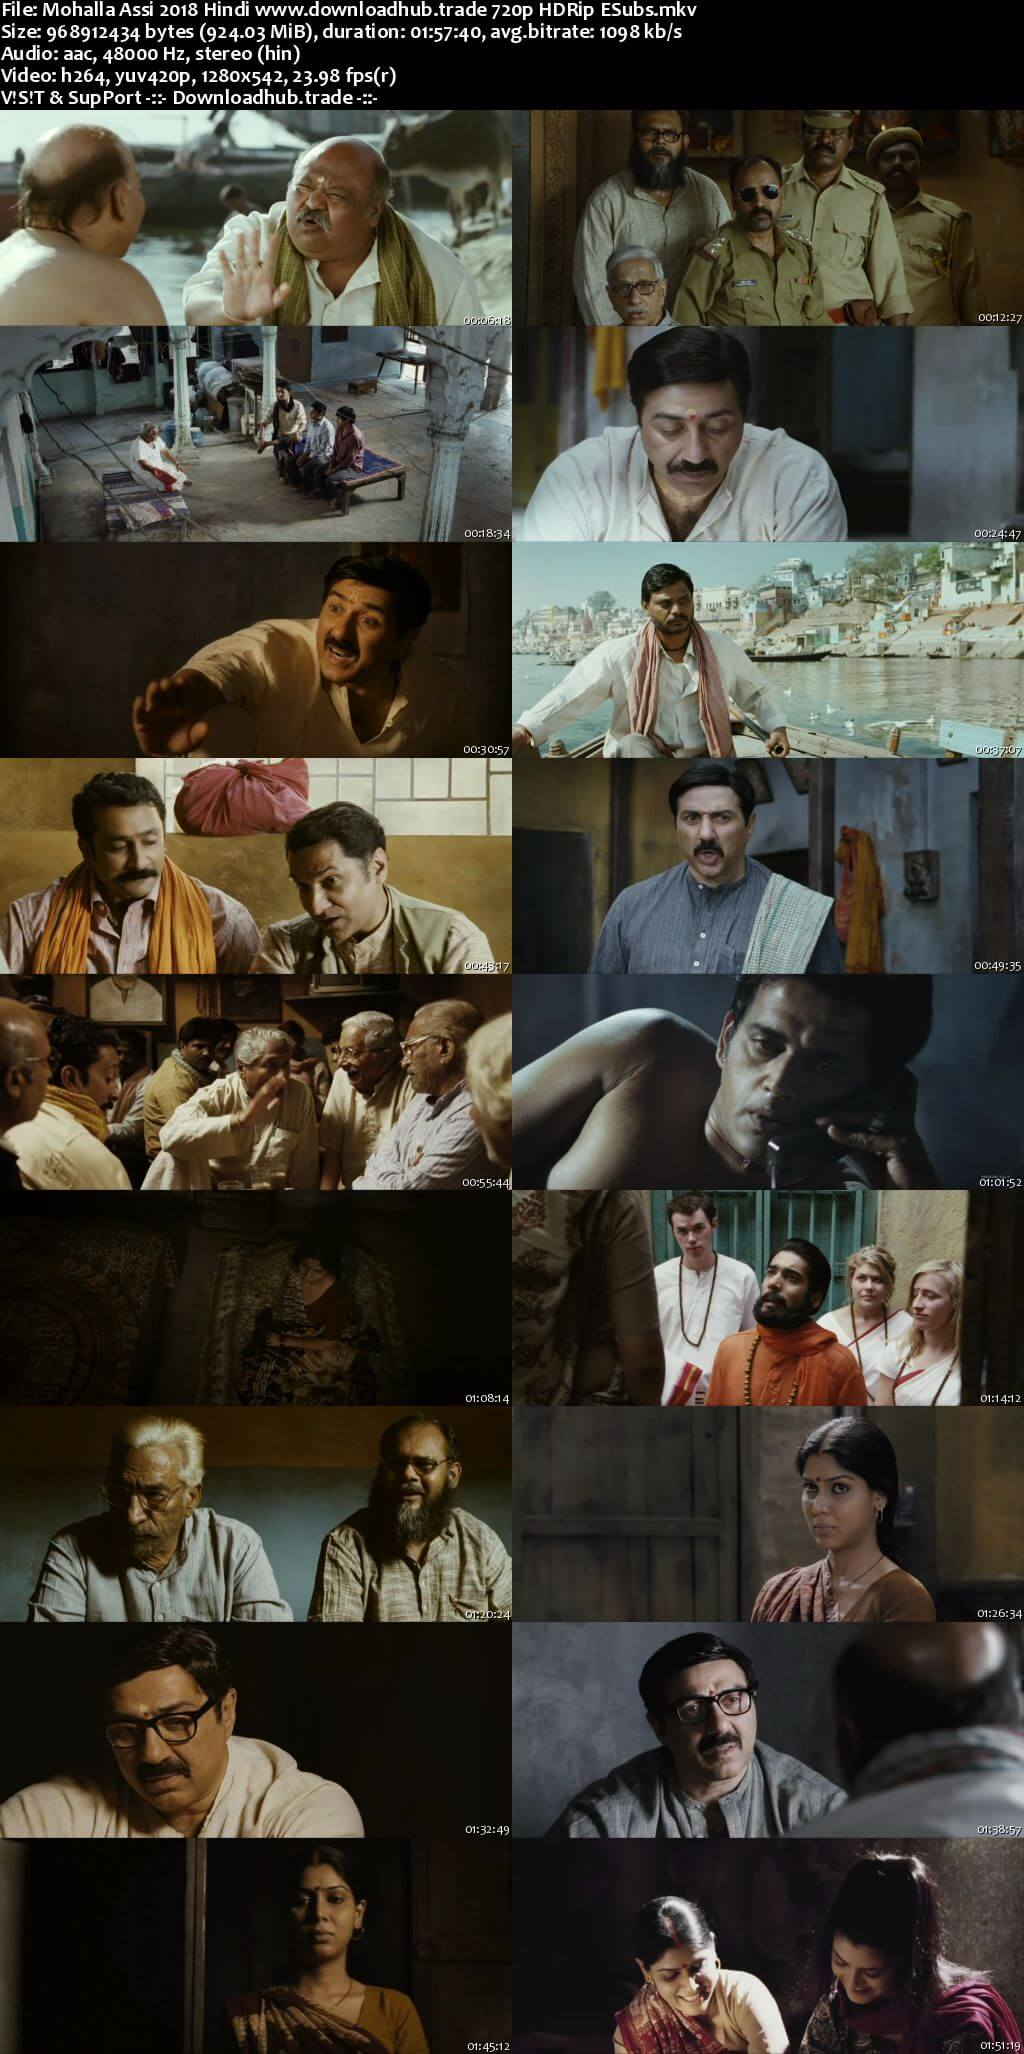 Mohalla Assi 2018 Hindi 720p HDRip ESubs